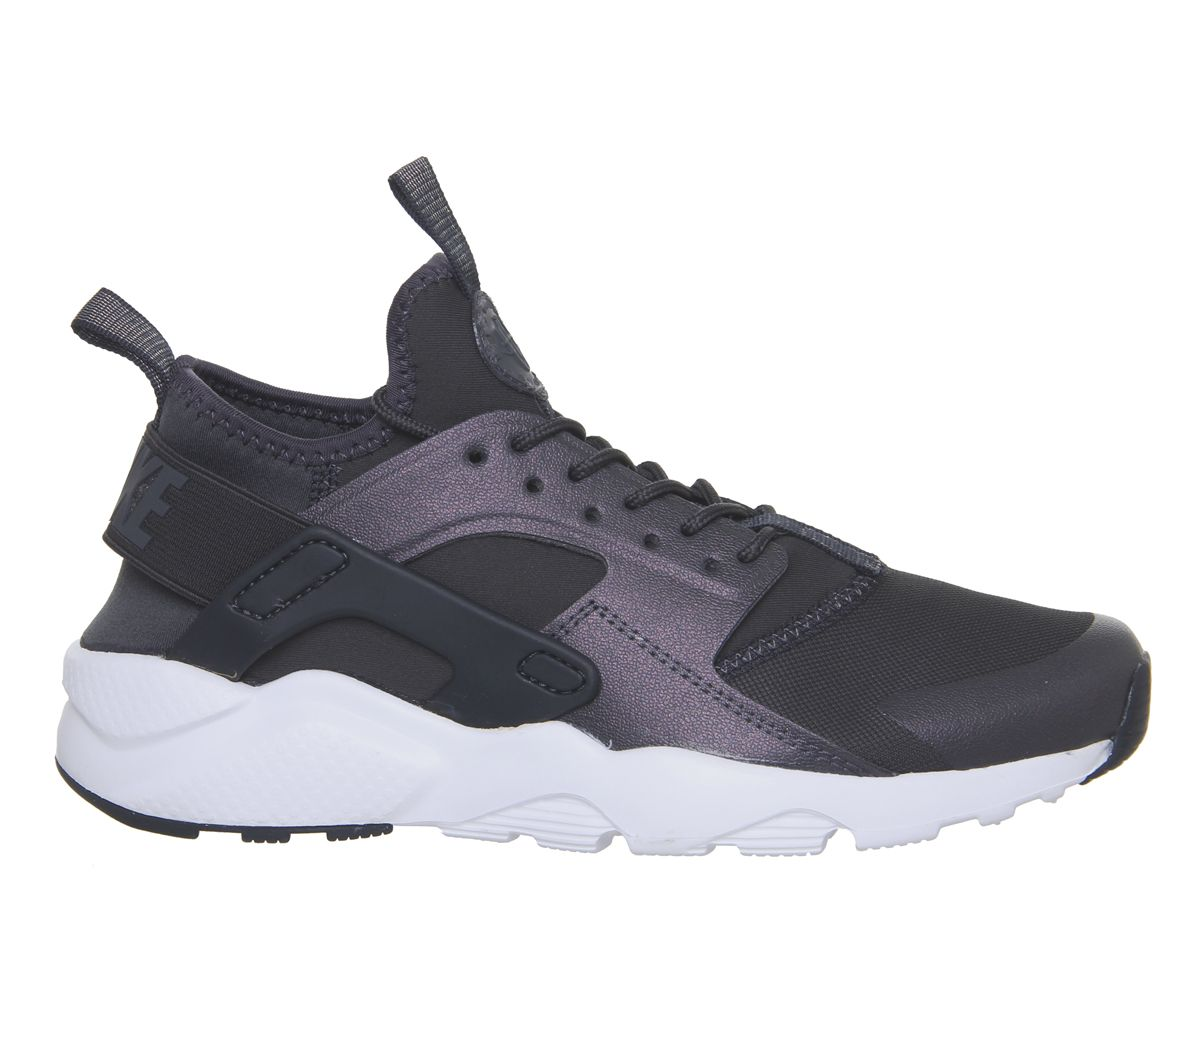 1db57393b9c6 Nike Huarache Ultra Gs Trainers Anthracite White - Hers trainers